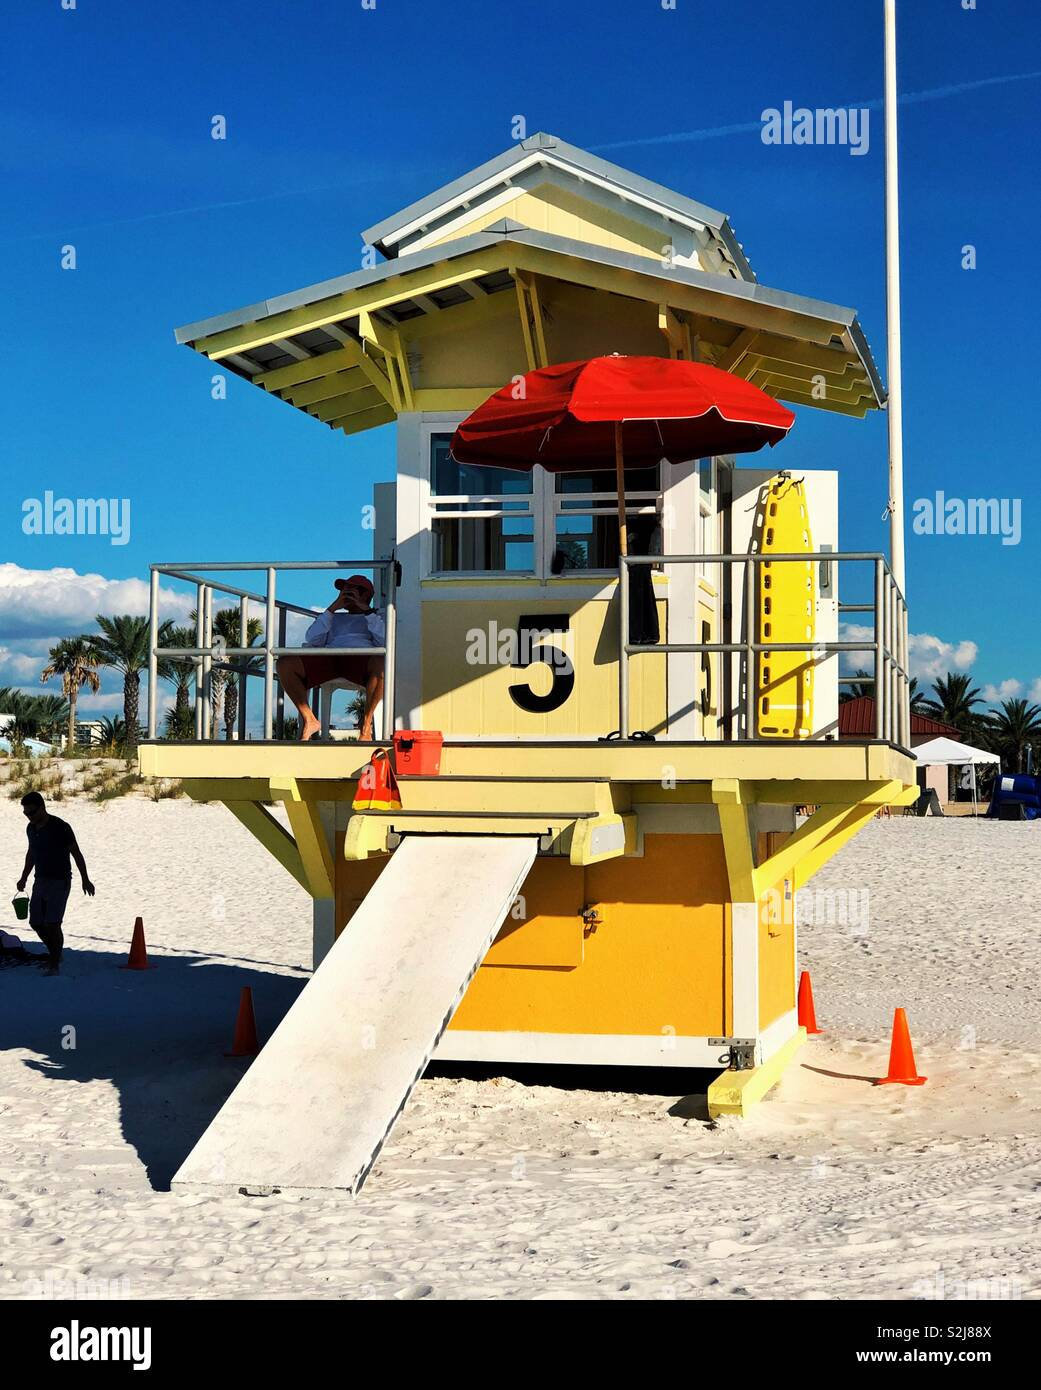 Yellow safeguard rescue station at Clearwater Beach in Florida - Stock Image